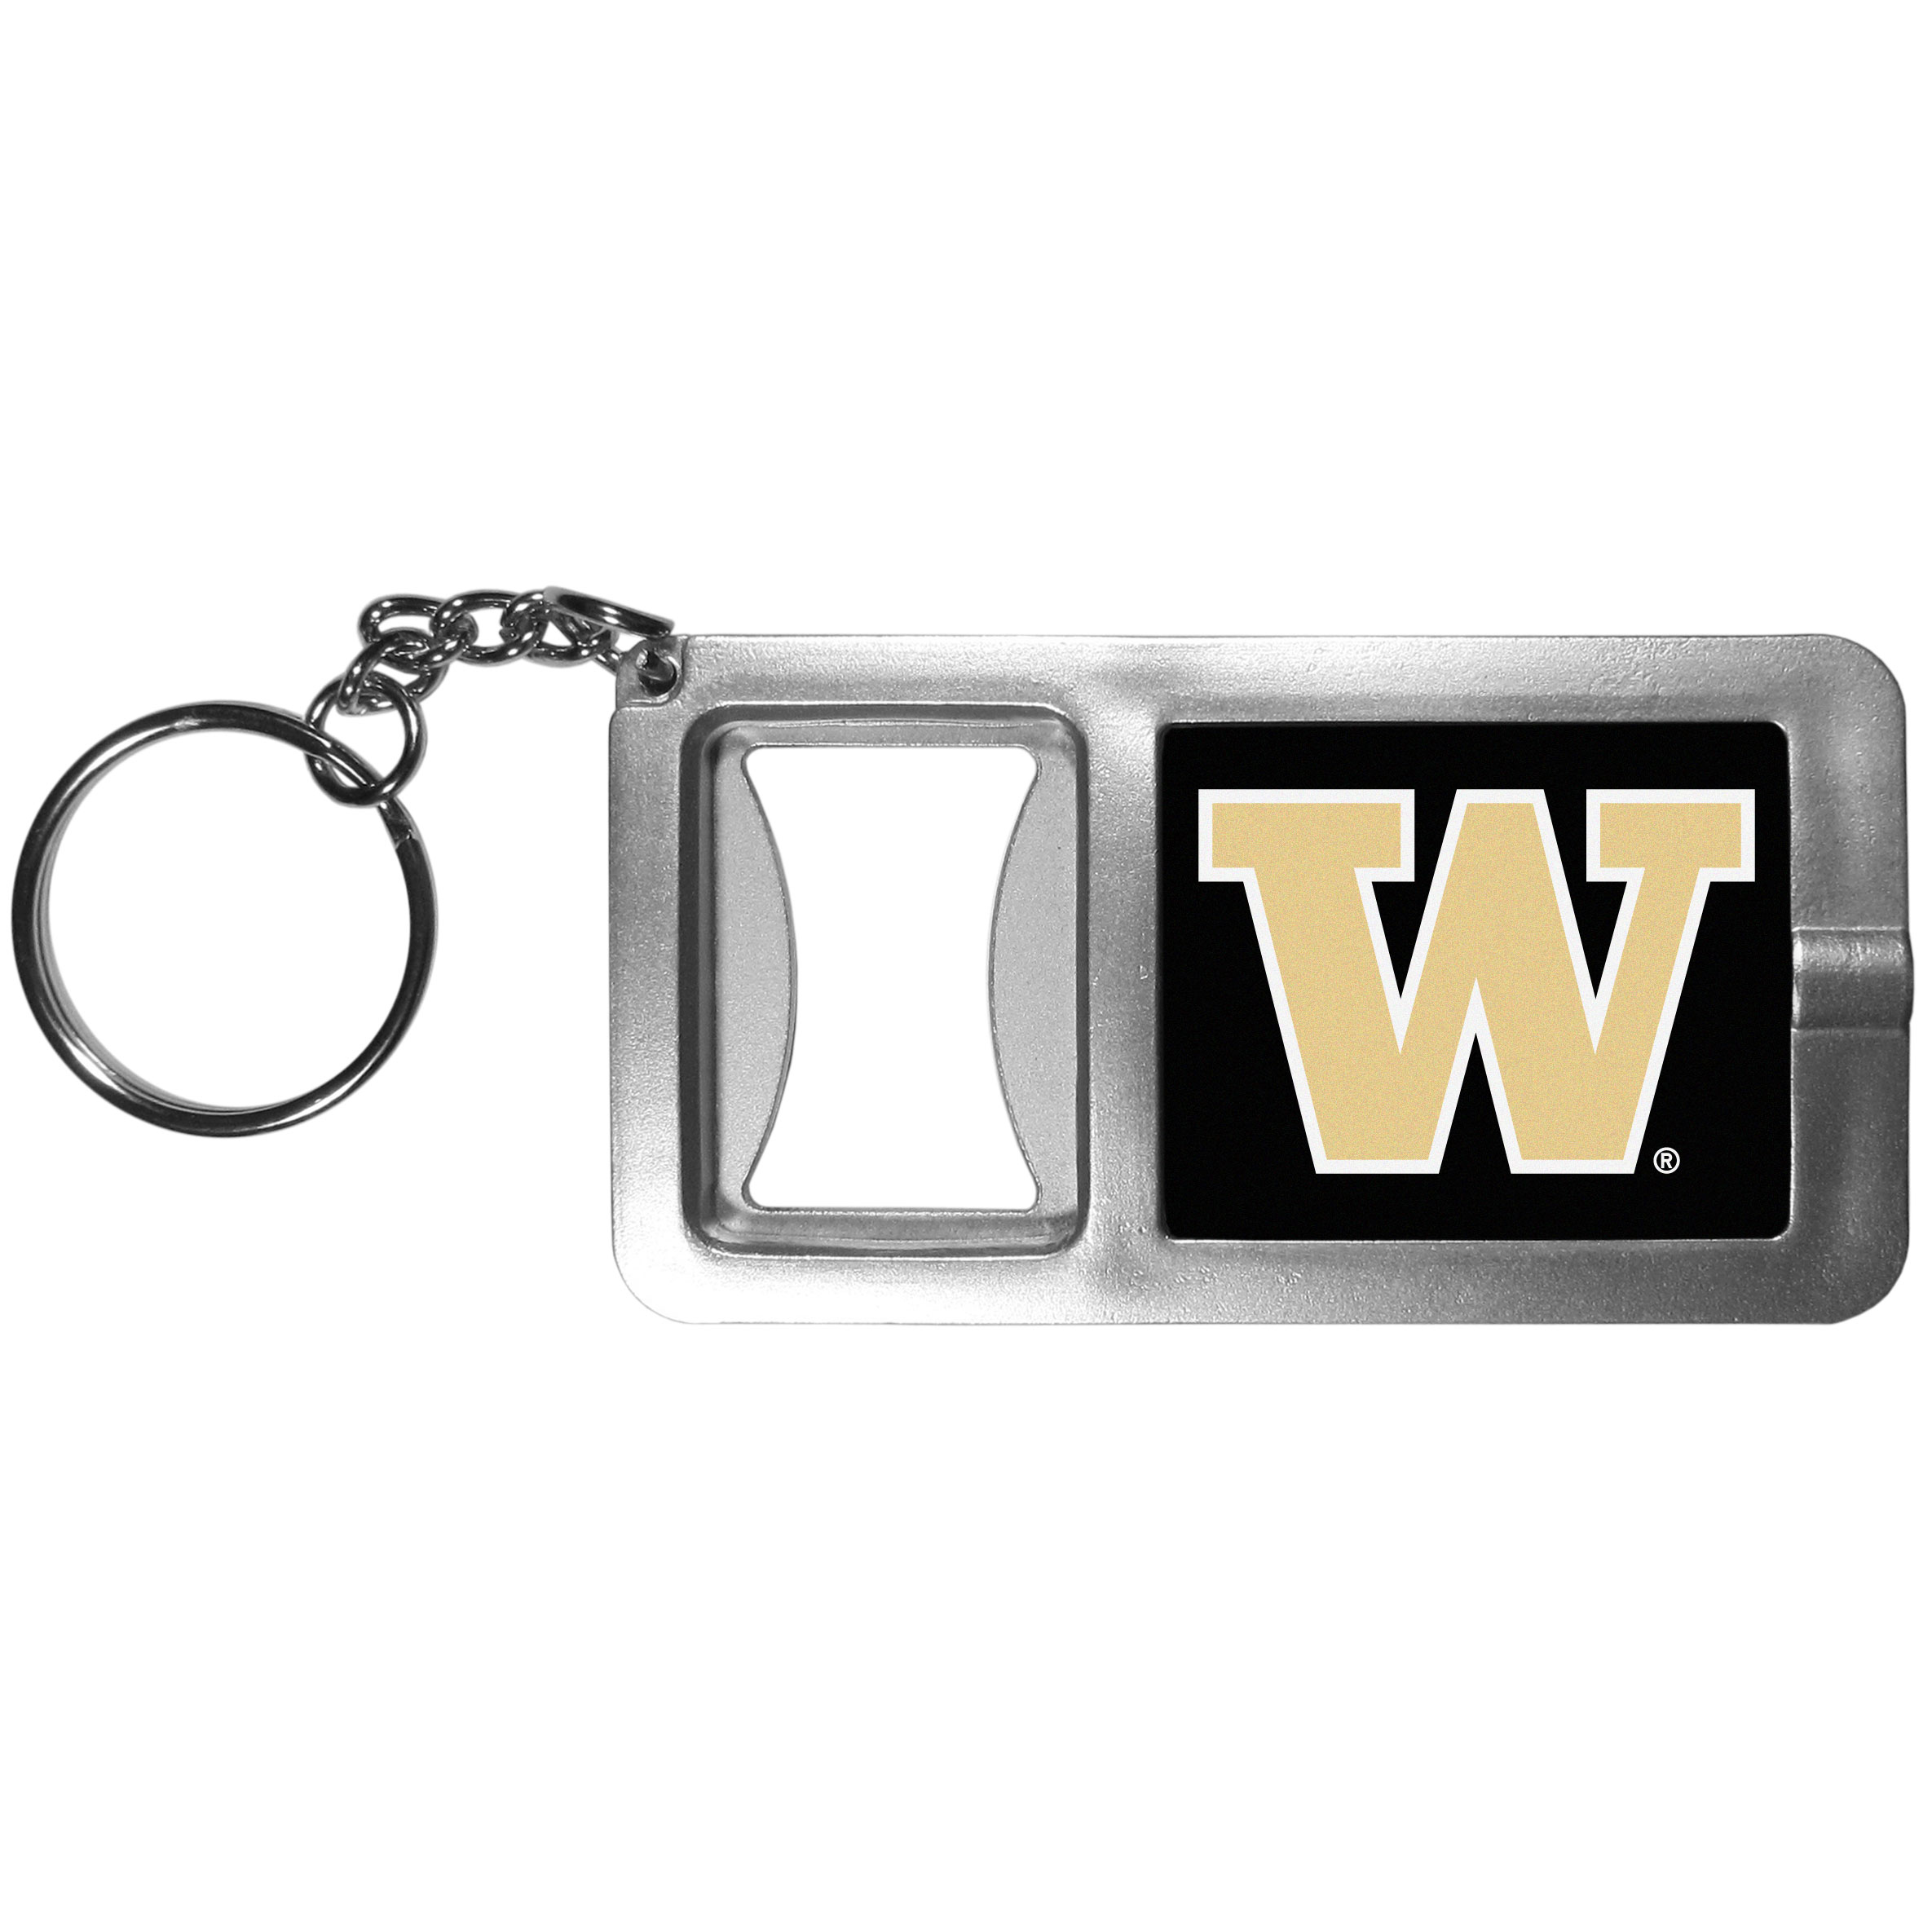 Washington Huskies Flashlight Key Chain with Bottle Opener - Never be without light with our Washington Huskies flashlight keychain that features a handy bottle opener feature. This versatile key chain is perfect for camping and travel and is a great way to show off your team pride!